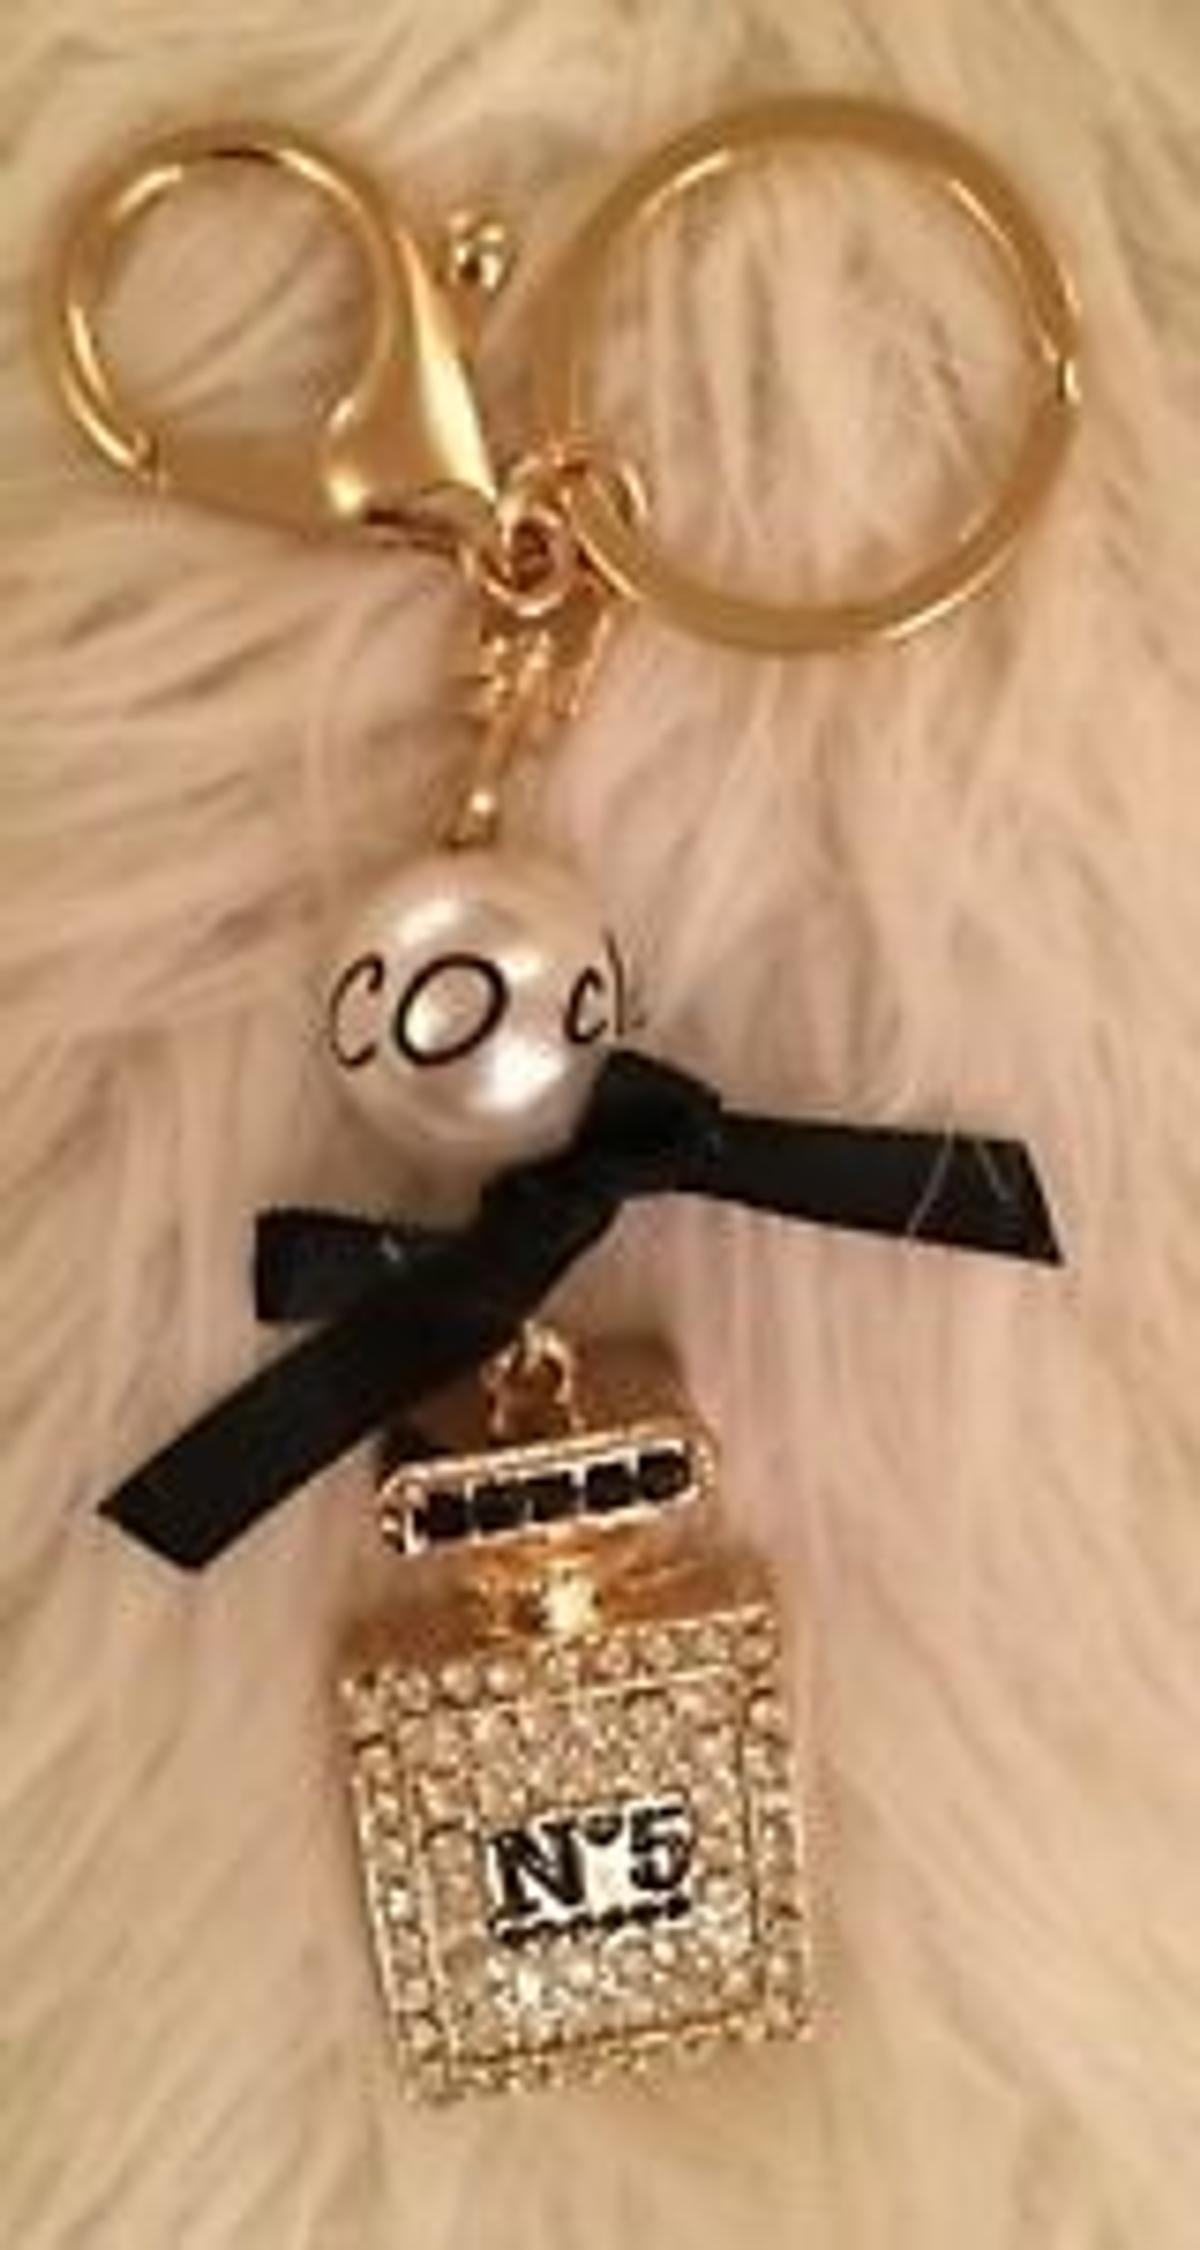 aaee2cf4a2 CHANEL LUXURY 🛍INSPIRE PEARL KEYRING * in ng5 6ae nottingham for ...